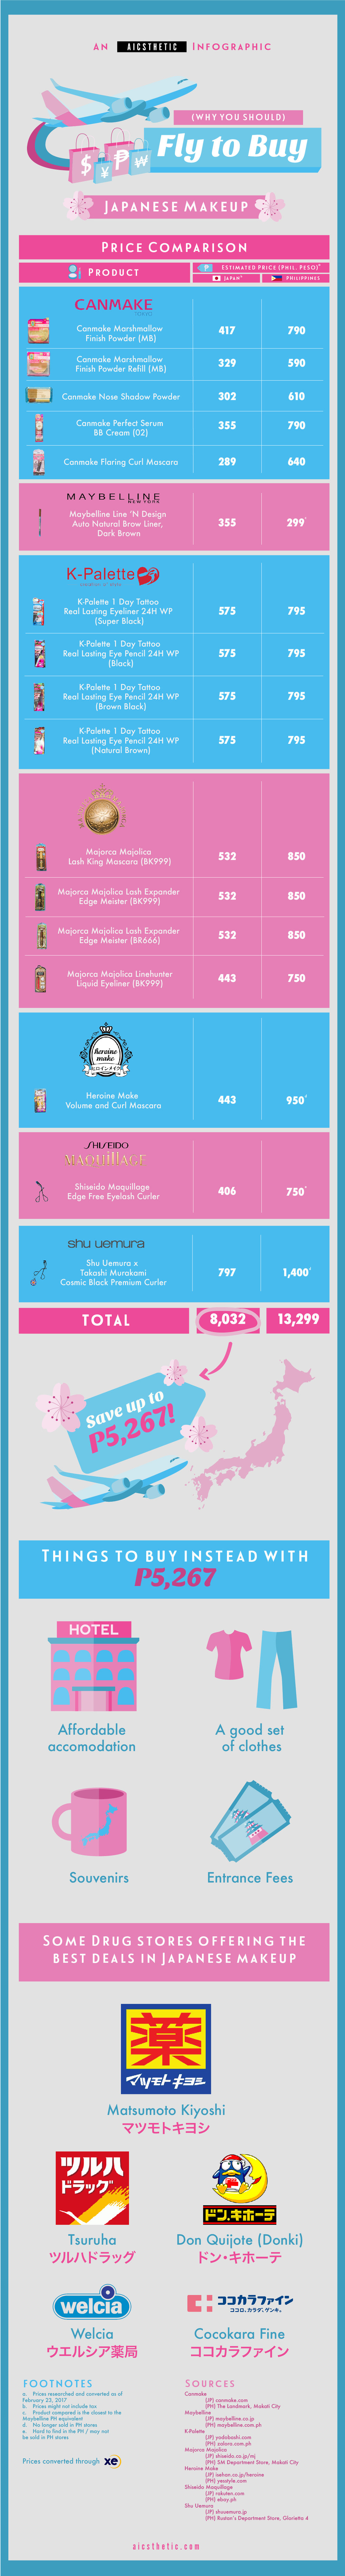 Japan 2016 Beauty Haul - Infographic canmake heroine make majolica majorca shu uemura shiseido kpalette k palette k-palette eyebrow eyeshadow bb cream powder mascara eyelash curler